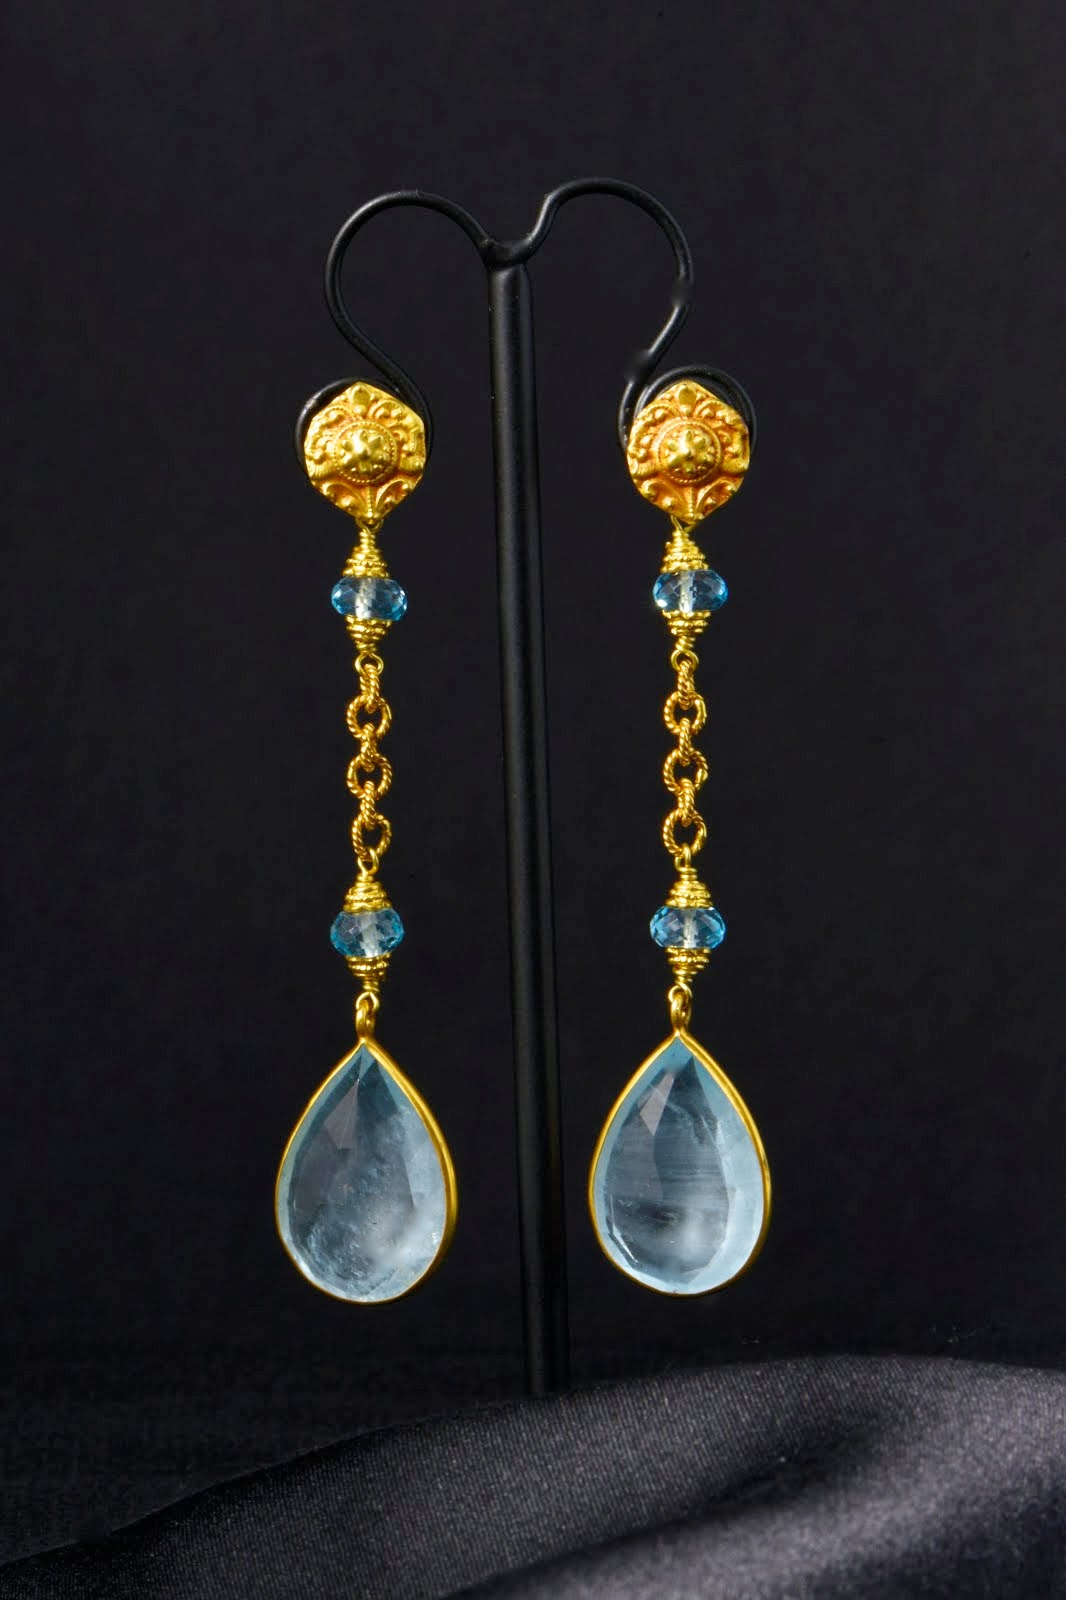 Acqumarine earrings